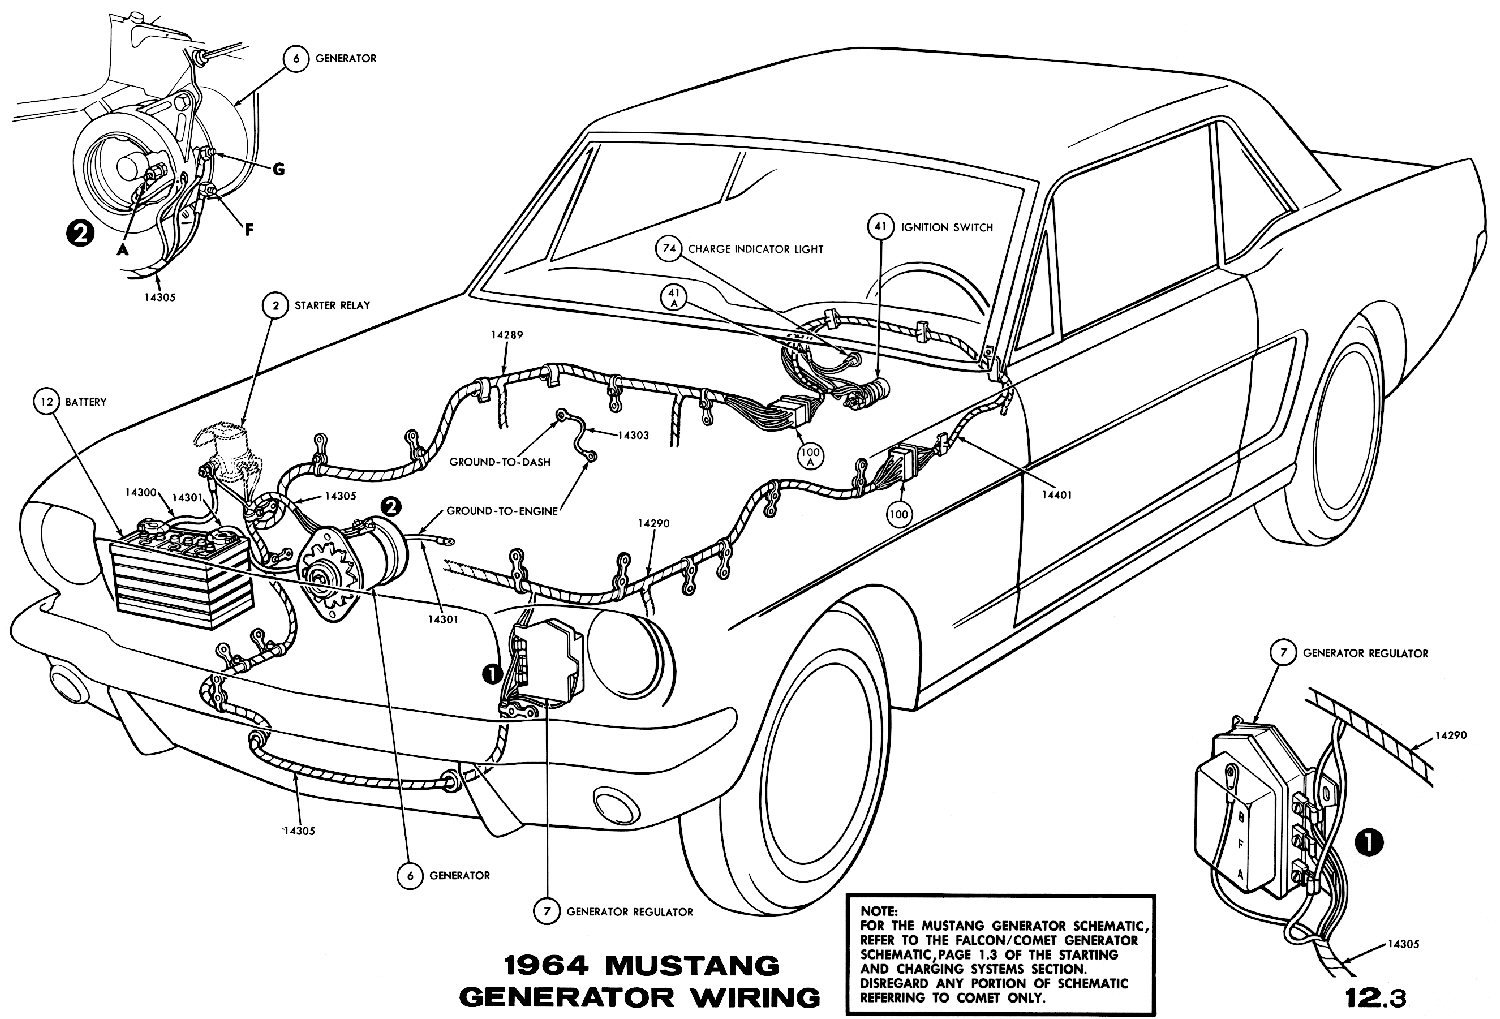 1964f 1964 mustang wiring diagrams average joe restoration 1966 mustang wiring diagrams at nearapp.co